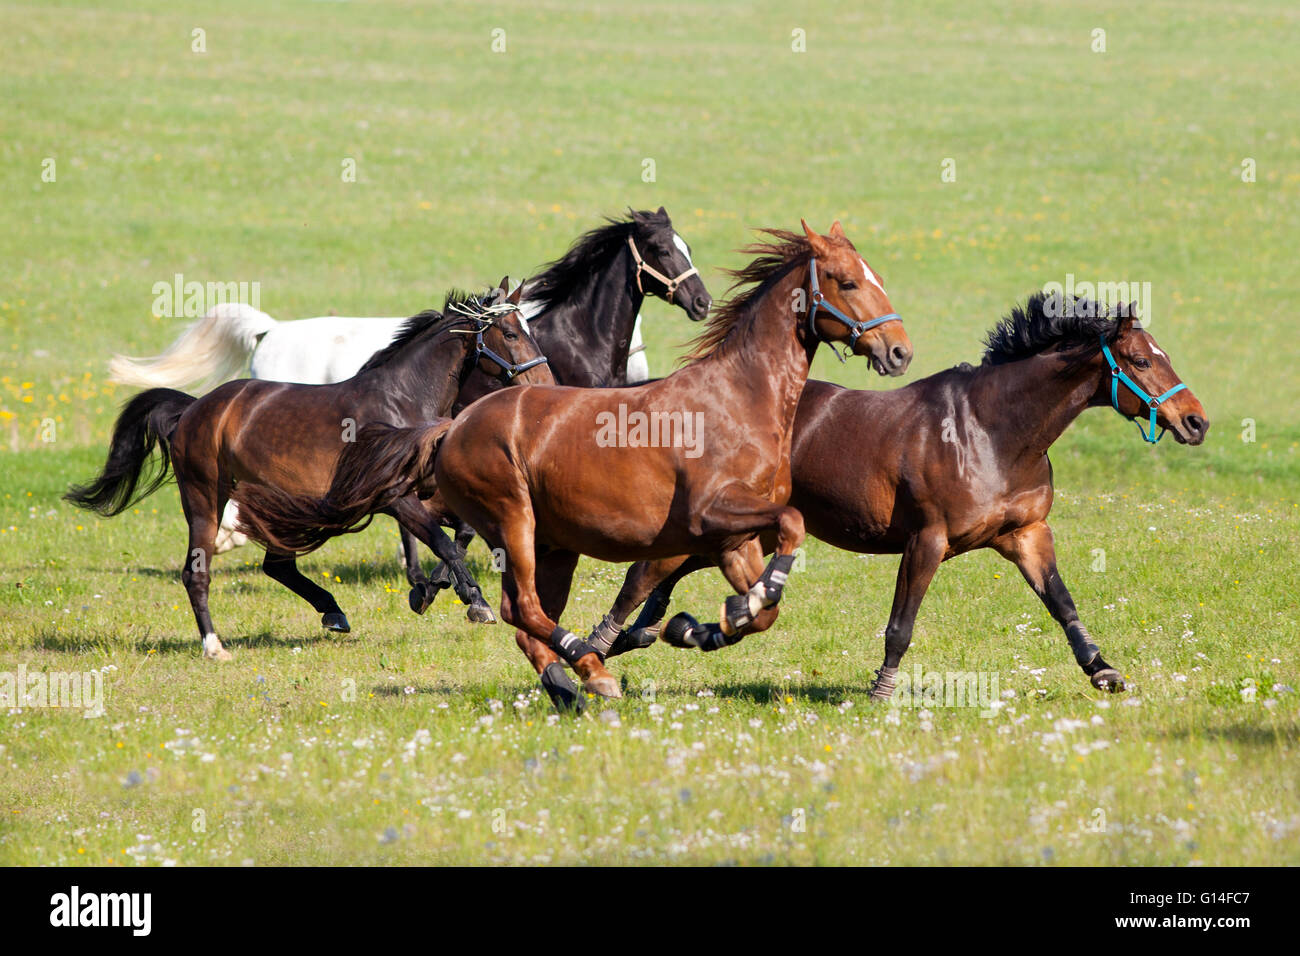 Herd of beautiful horses gallop on pasture - Stock Image